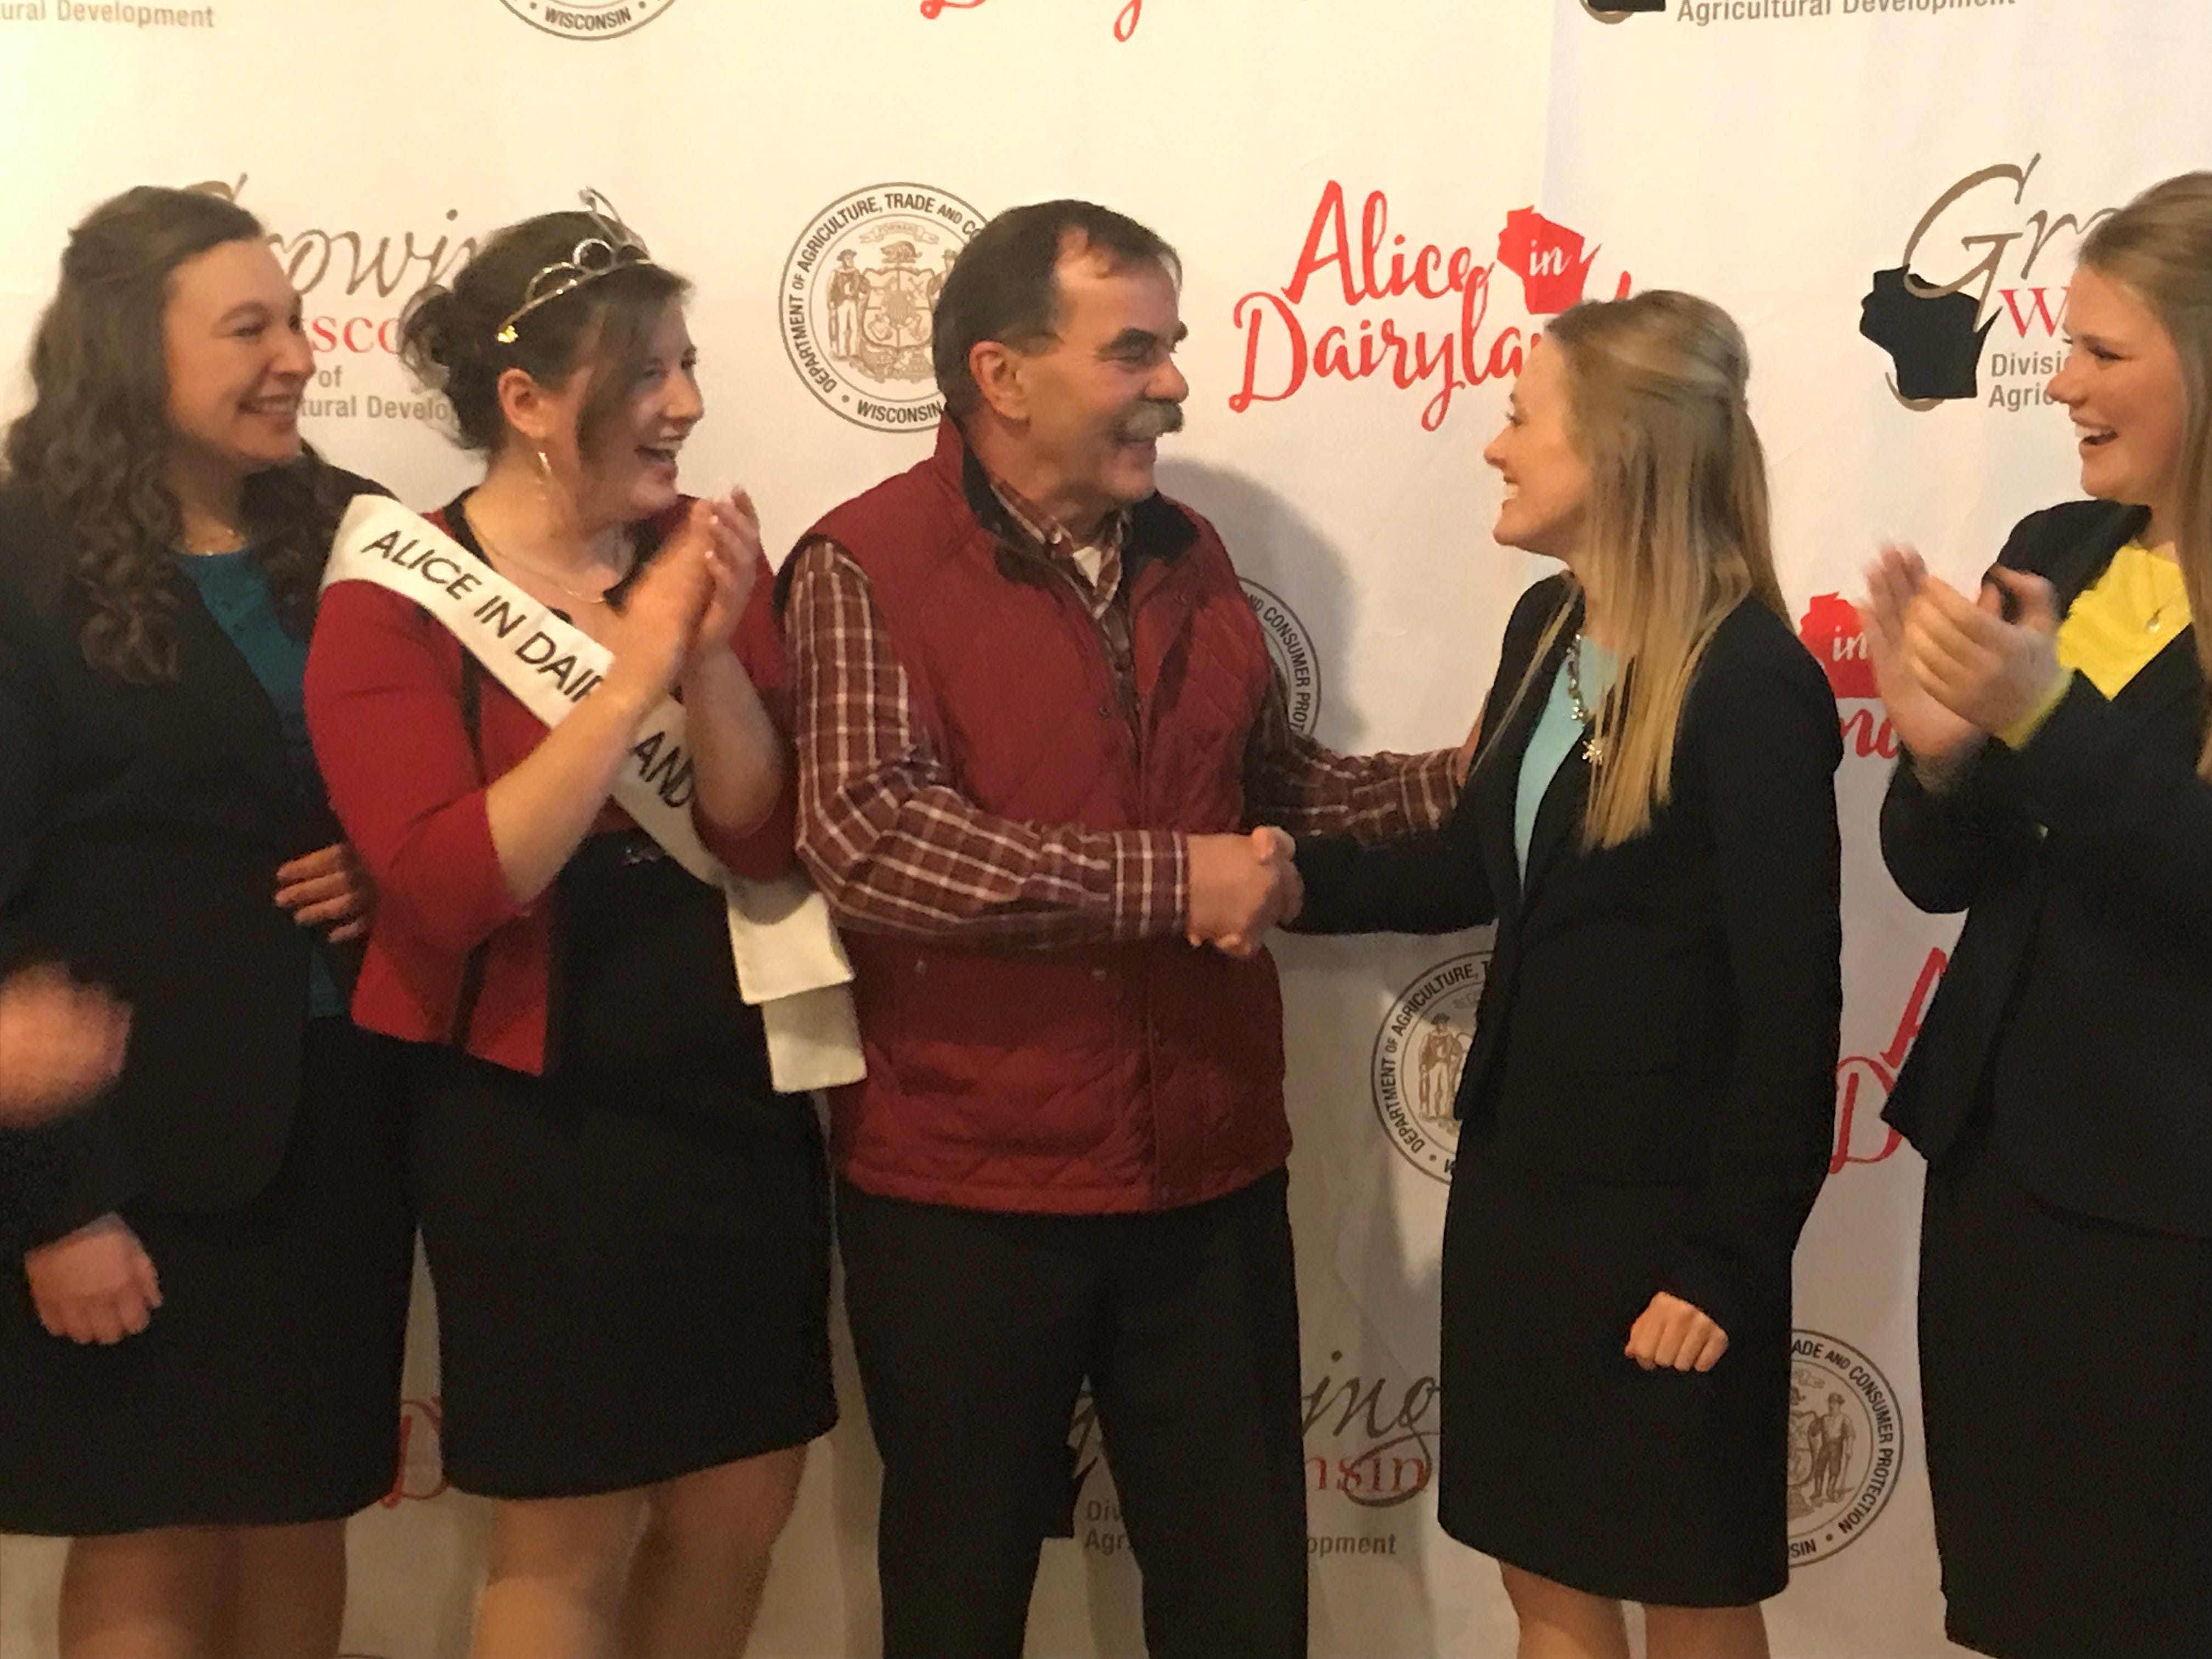 Swiss emigrant Tony Zgraggen shares his yodeling talents with the contestants  and Alice in Dairyland.